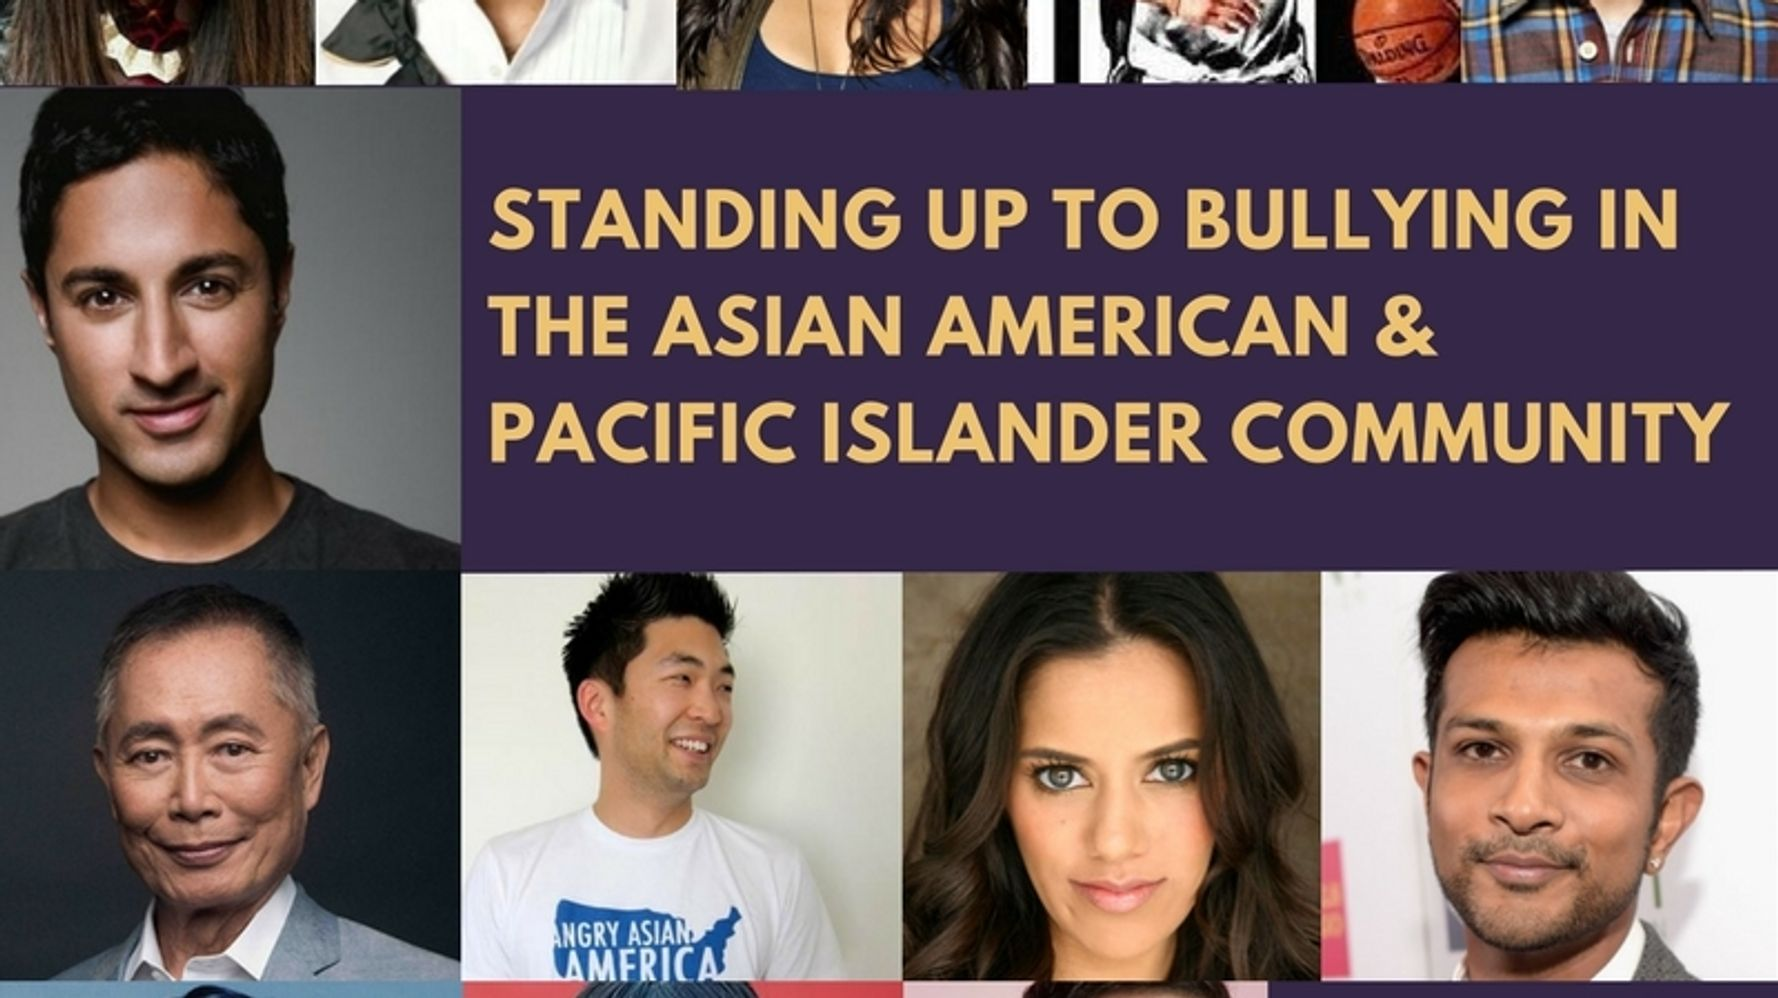 We Need To Stand Up To Bullying In The Asian American And